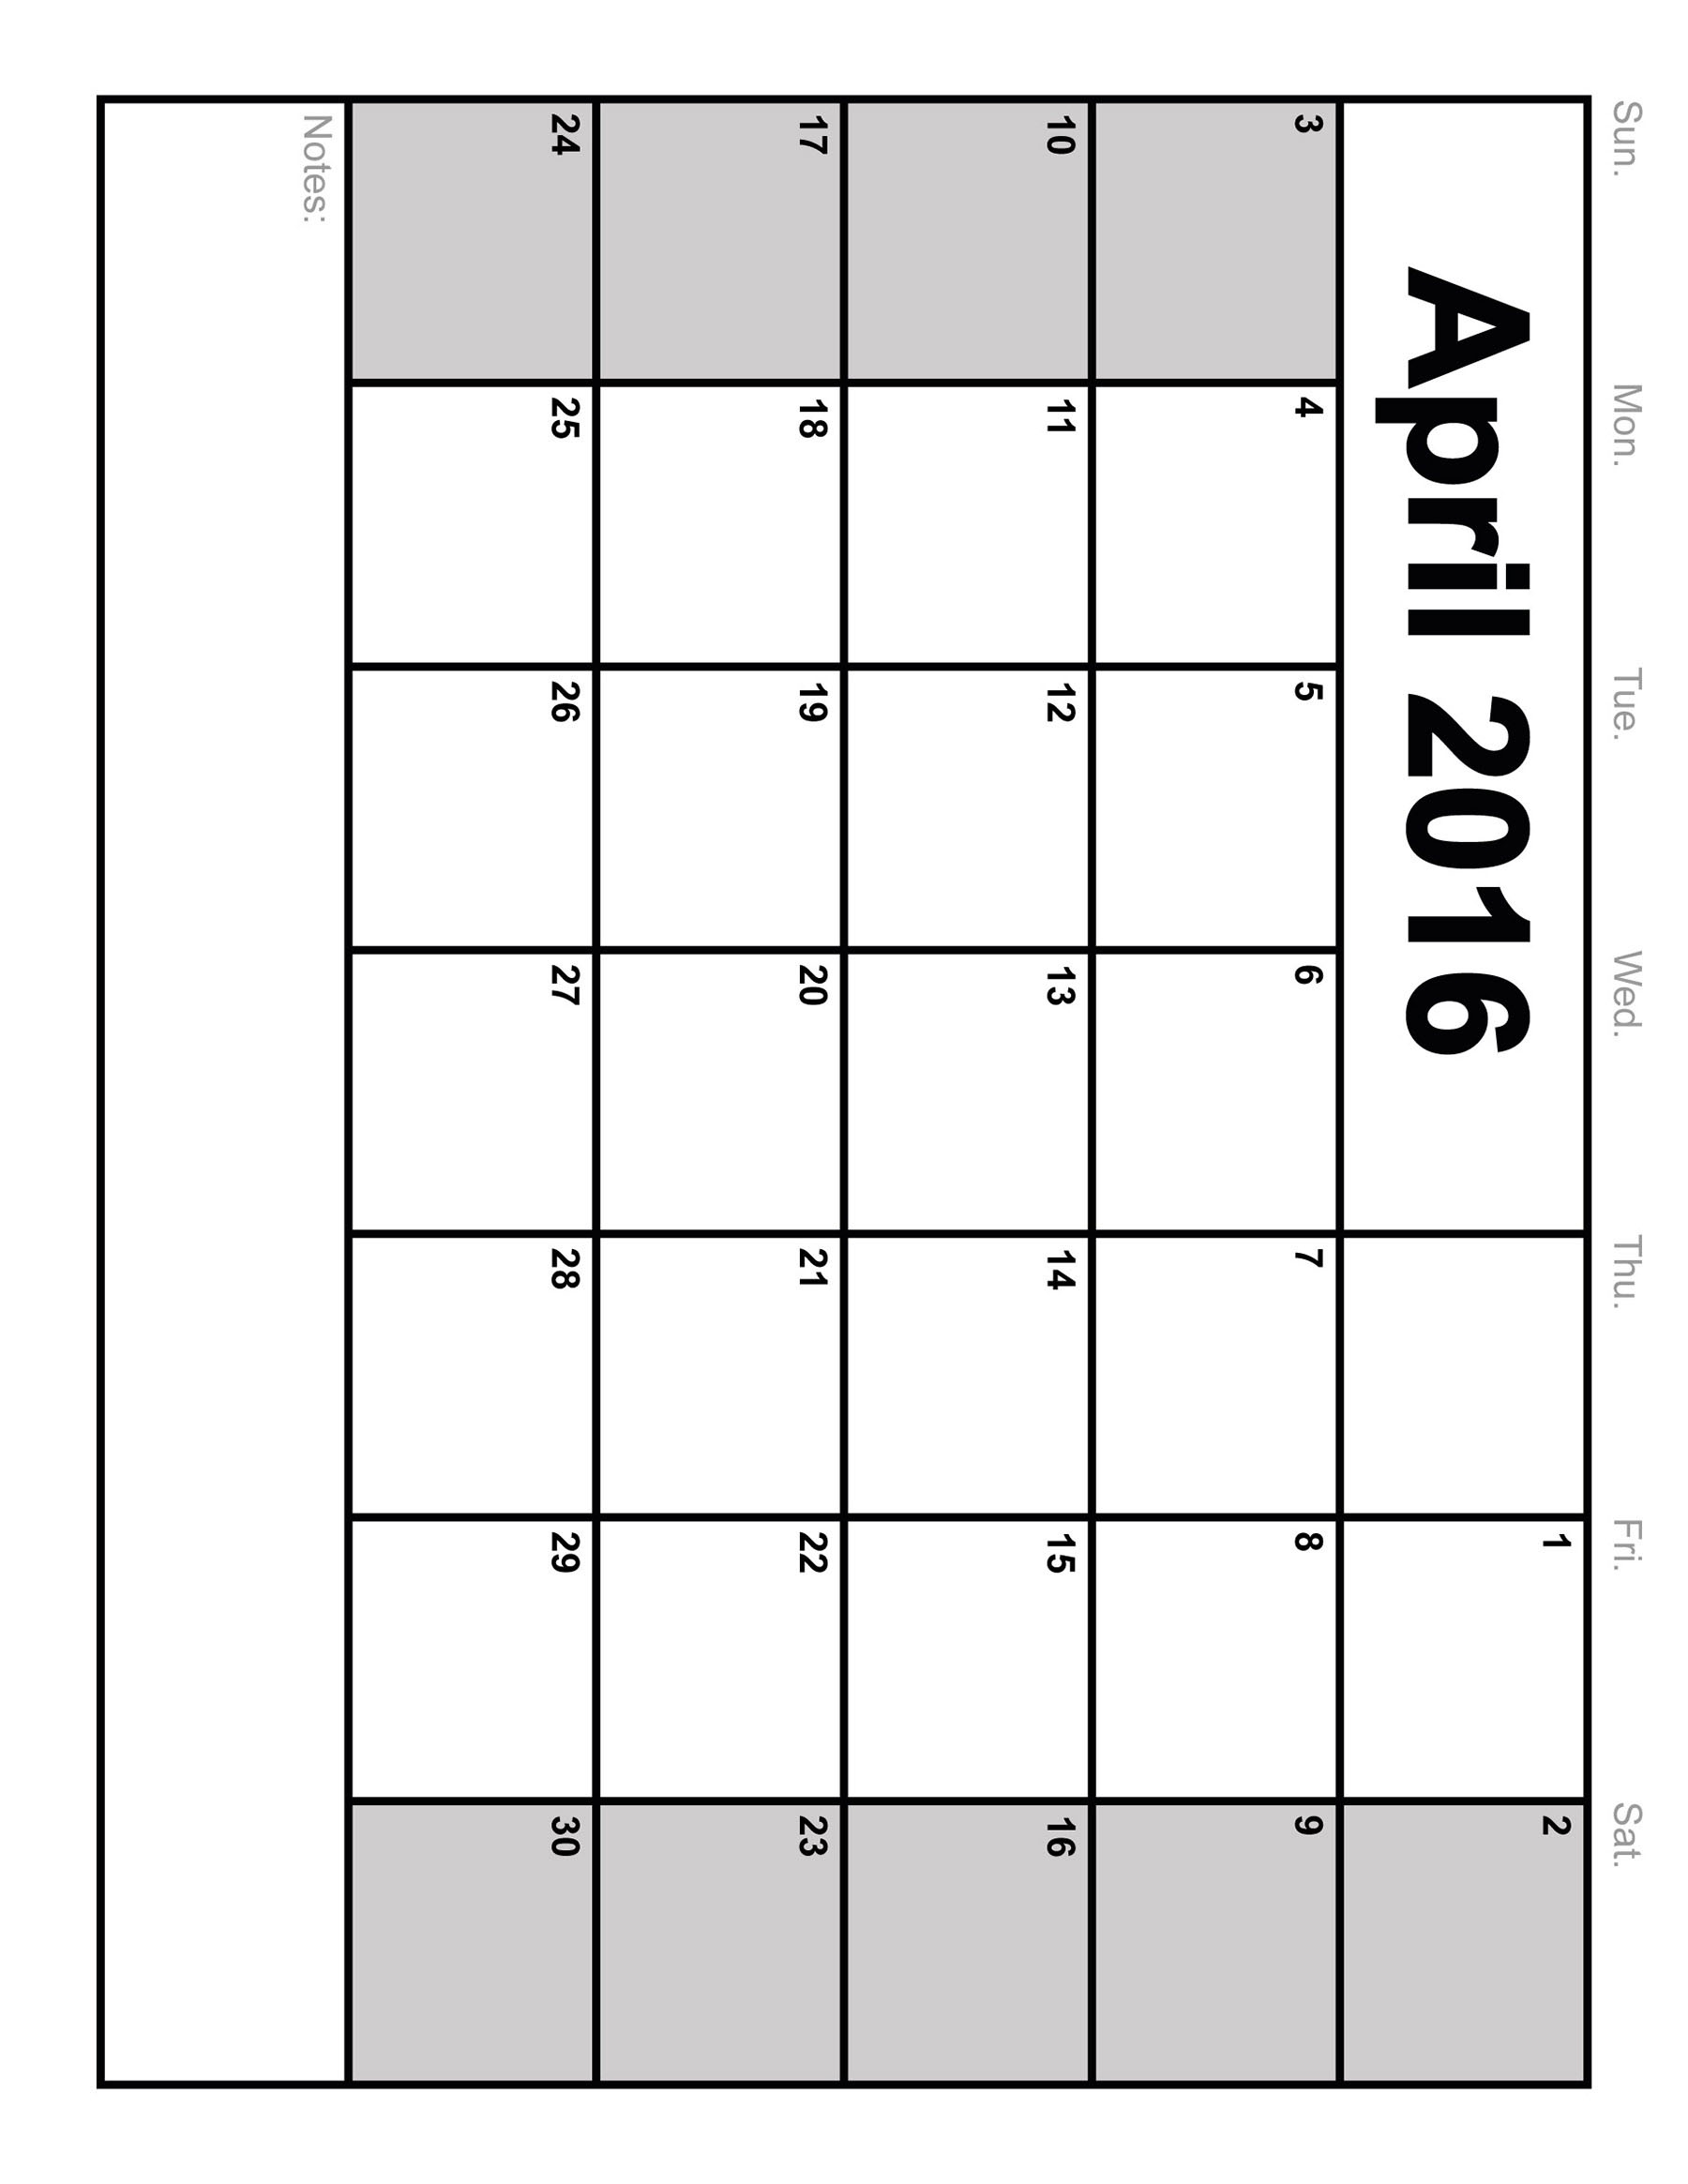 5 Images of 2016 Calendar Printable April